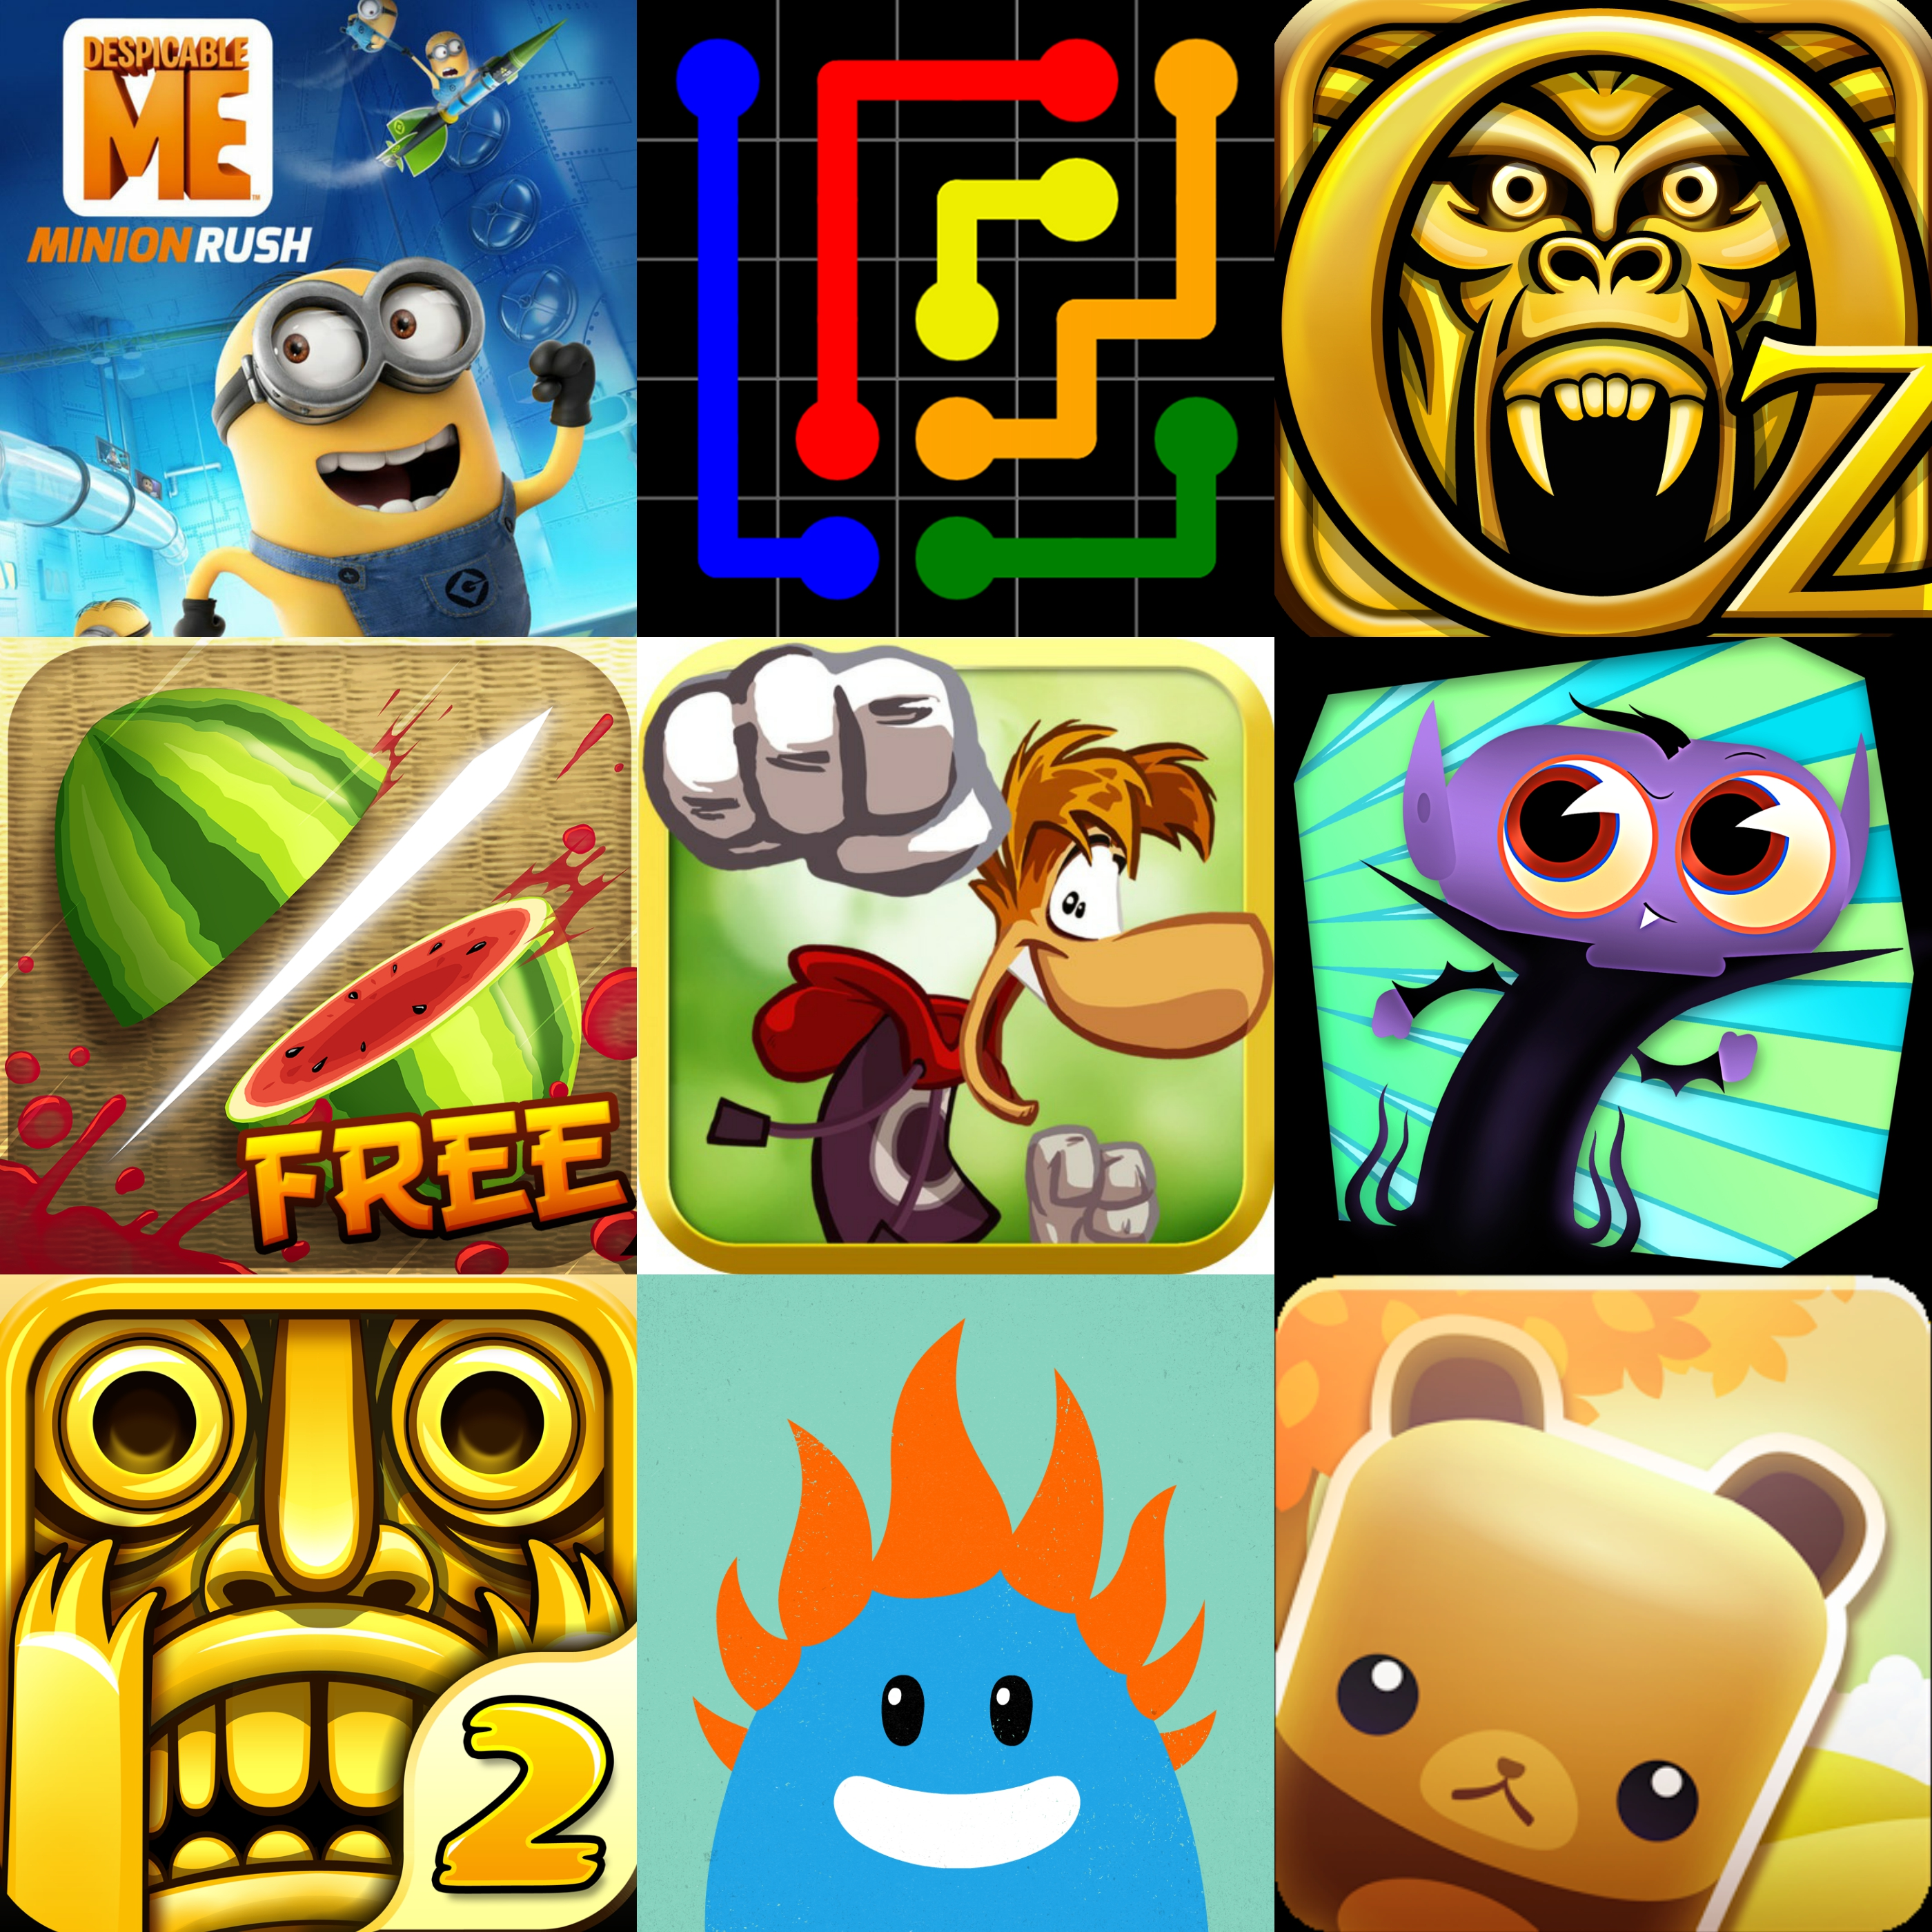 Displaying 20> Images For - Minion Rush Characters...: galleryhip.com/minion-rush-characters.html